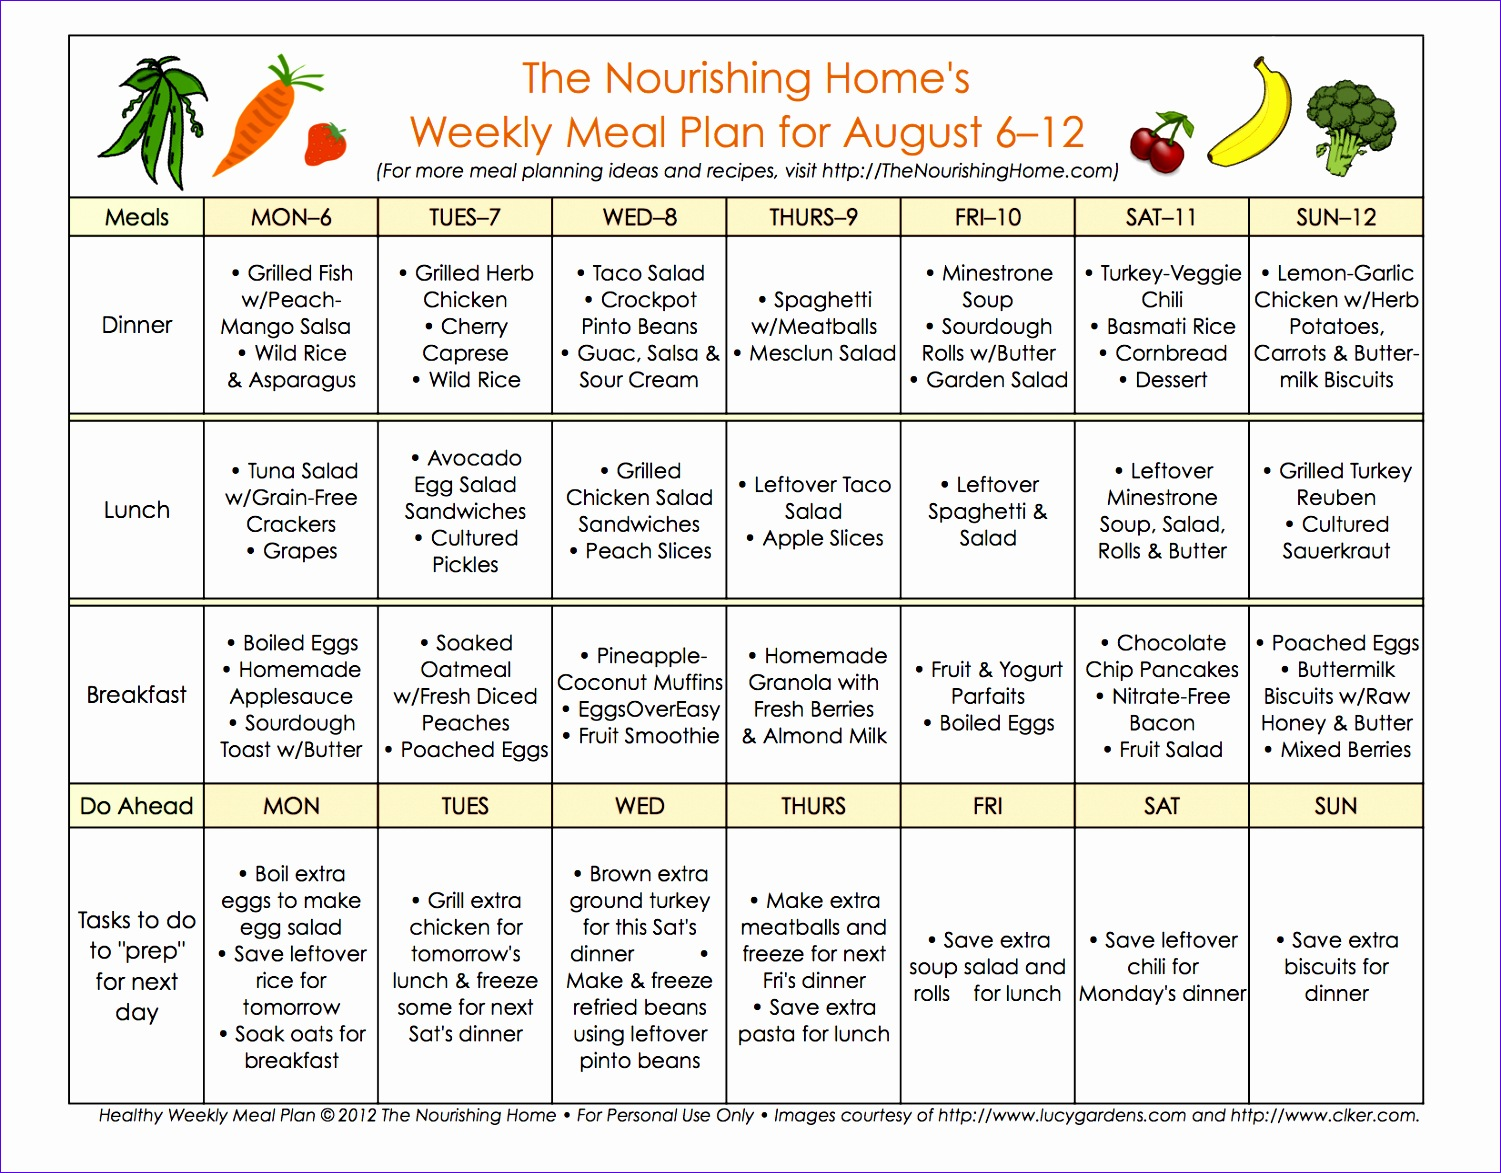 bi weekly meal plan for august 6 19 15011173